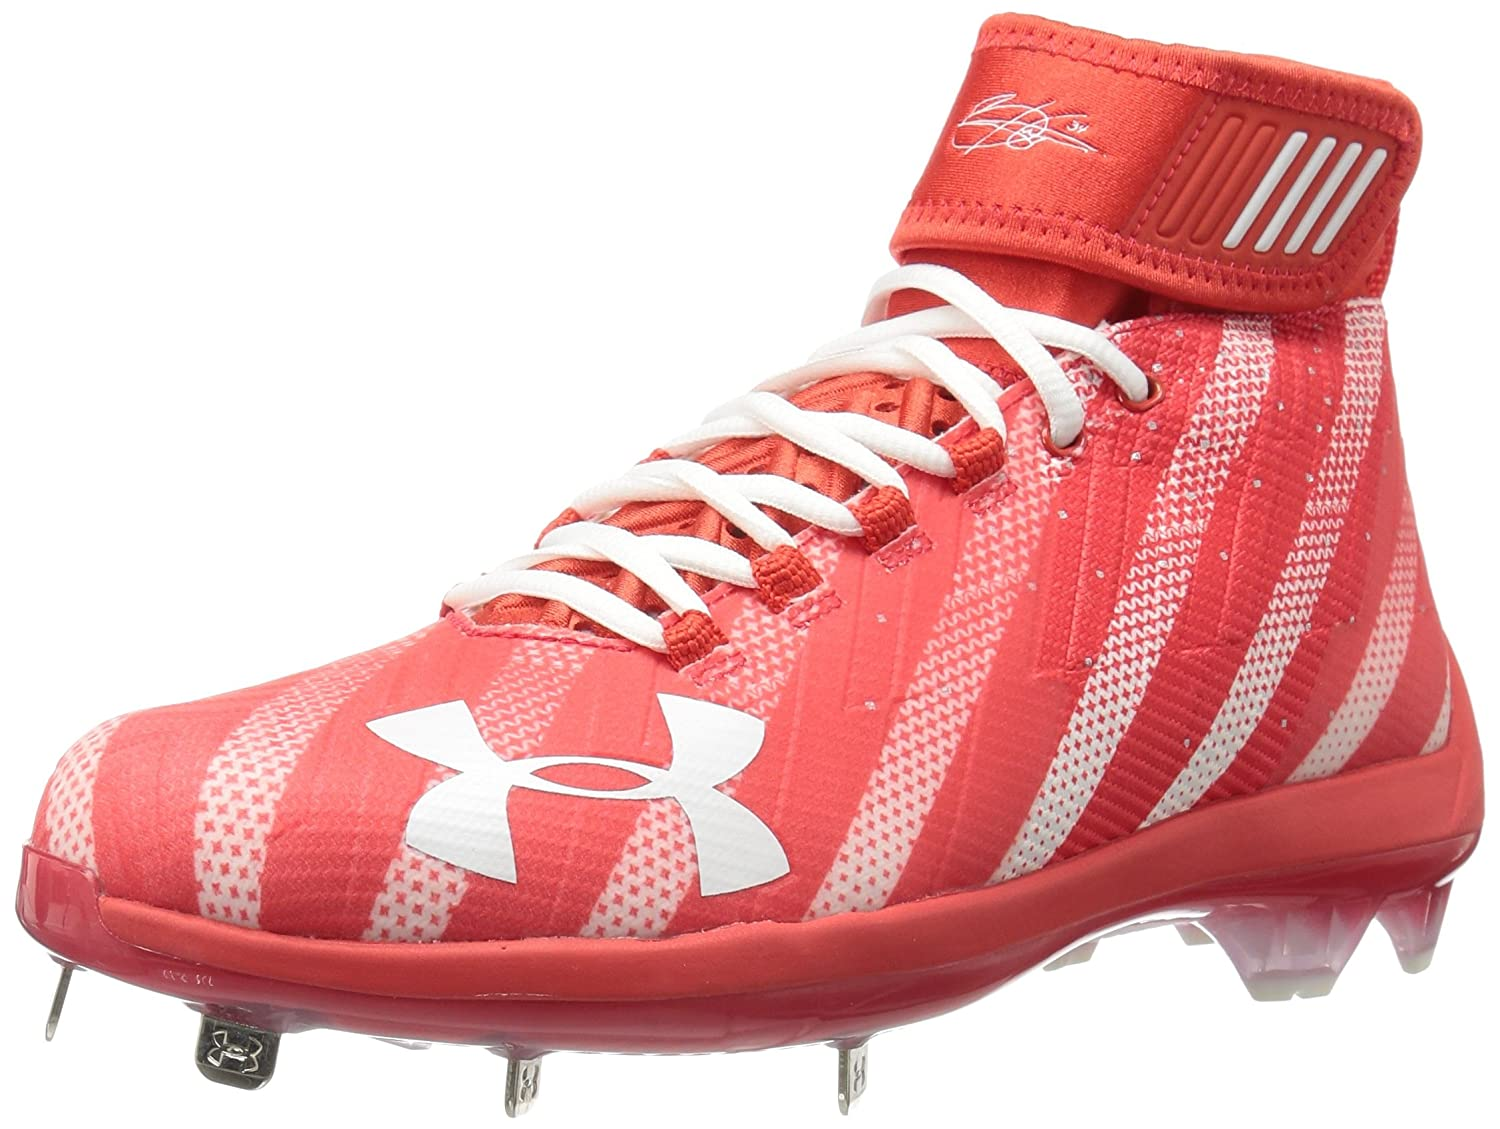 Under Armour Mens Harper 2 Mid ST-Limited Edition Baseball Shoe